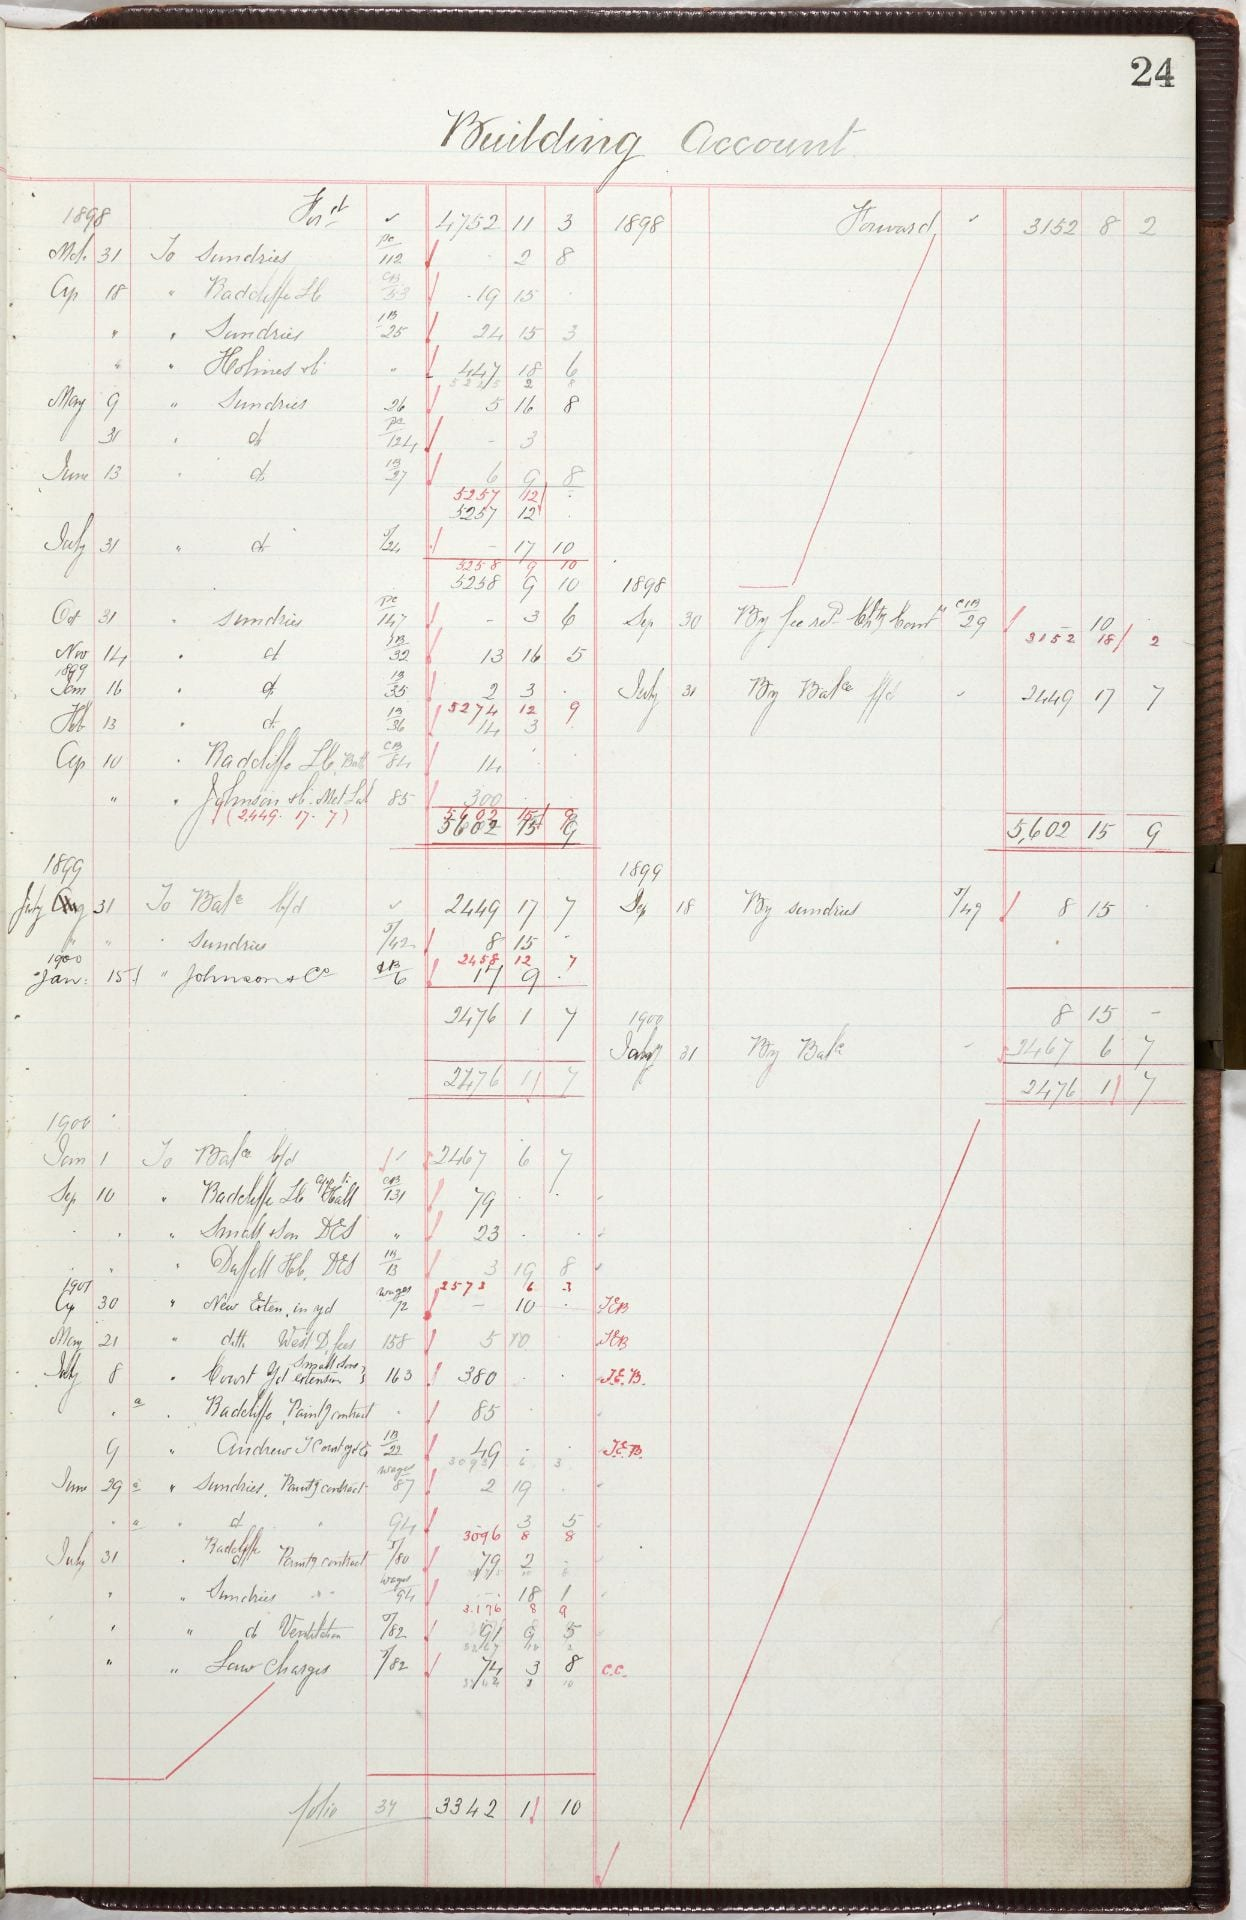 Financial ledger page 24 Building account. Costs arising from 1898.